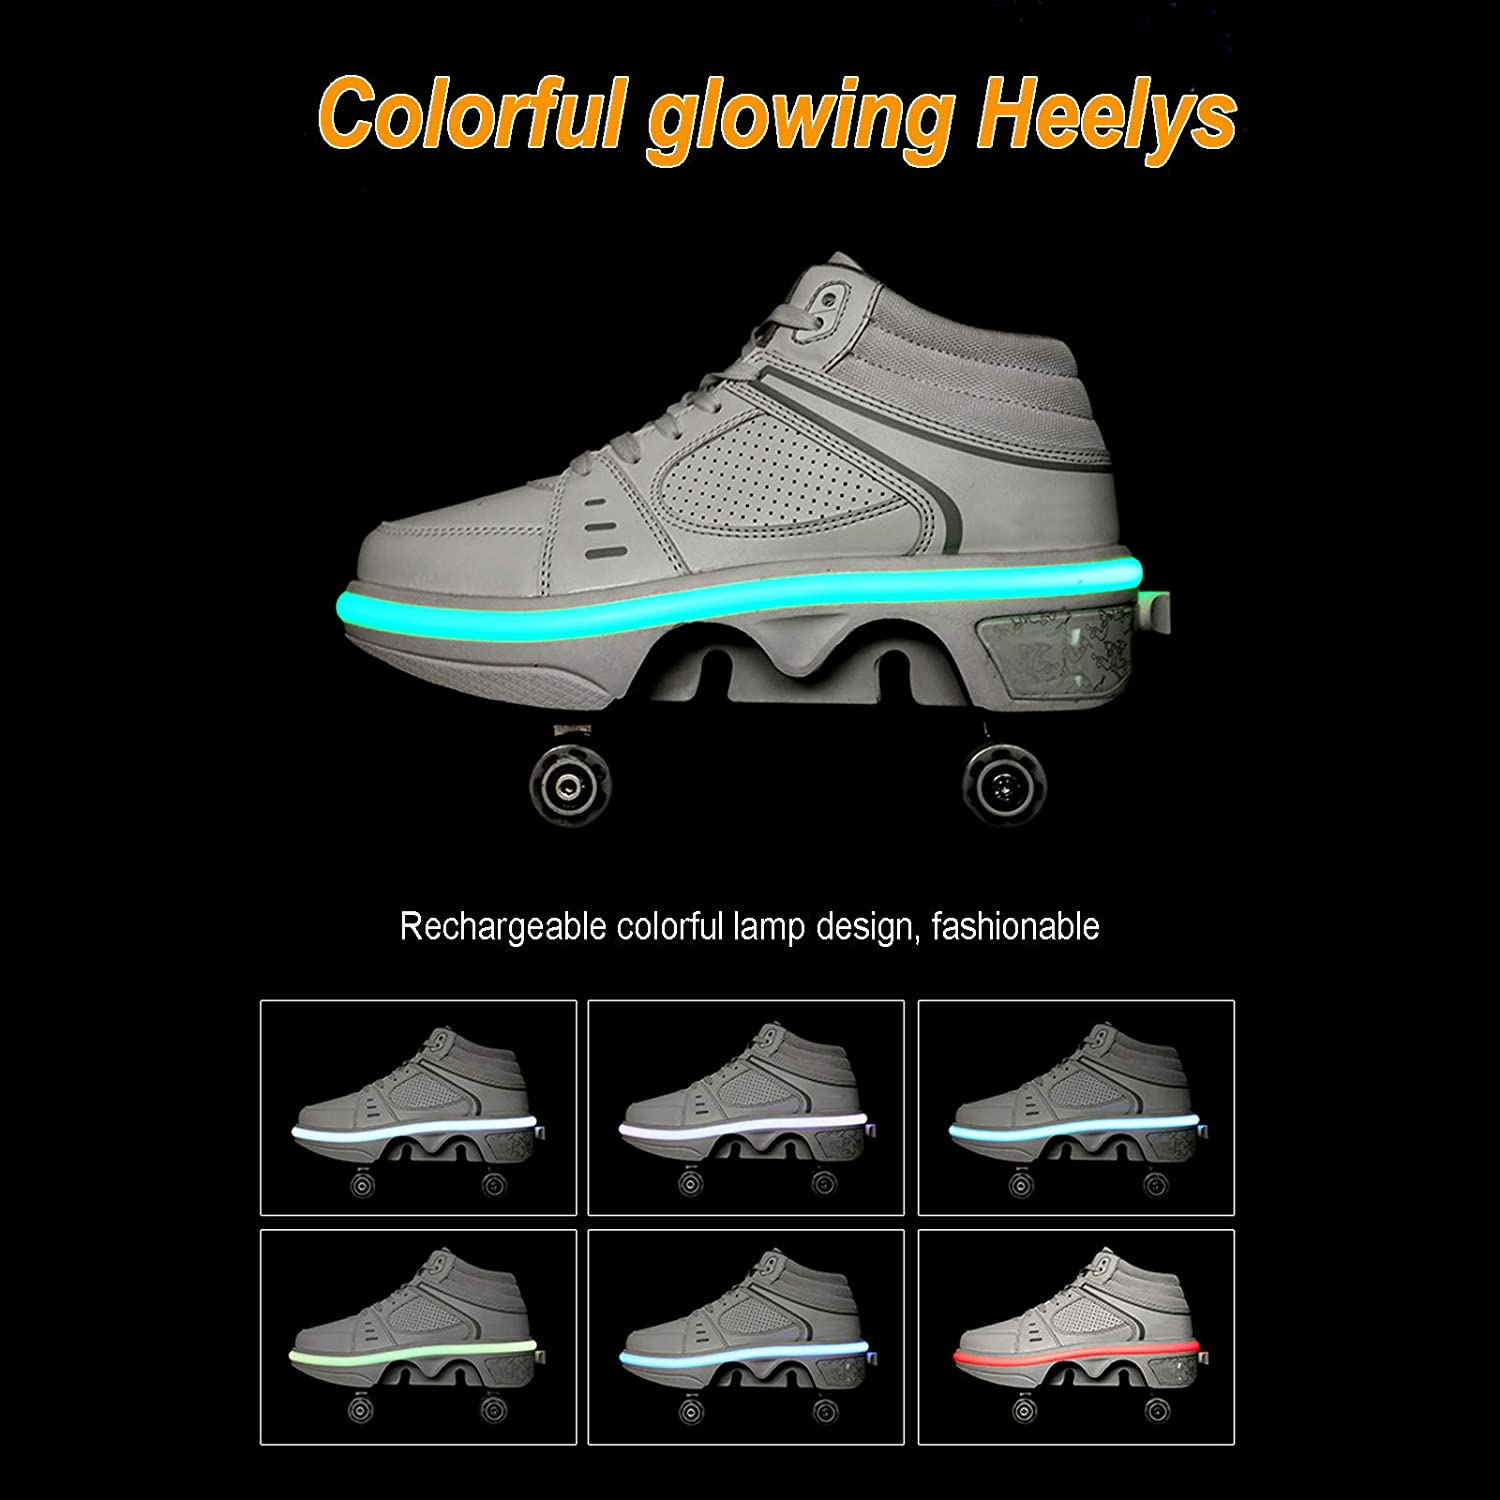 Fashiums Men Deformation Roller Skates 4 Wheel 2-in-1 Multi-Purpose Shoes Adjustable Quad Roller Skates Boots Boys Girls Universal Walking Shoes